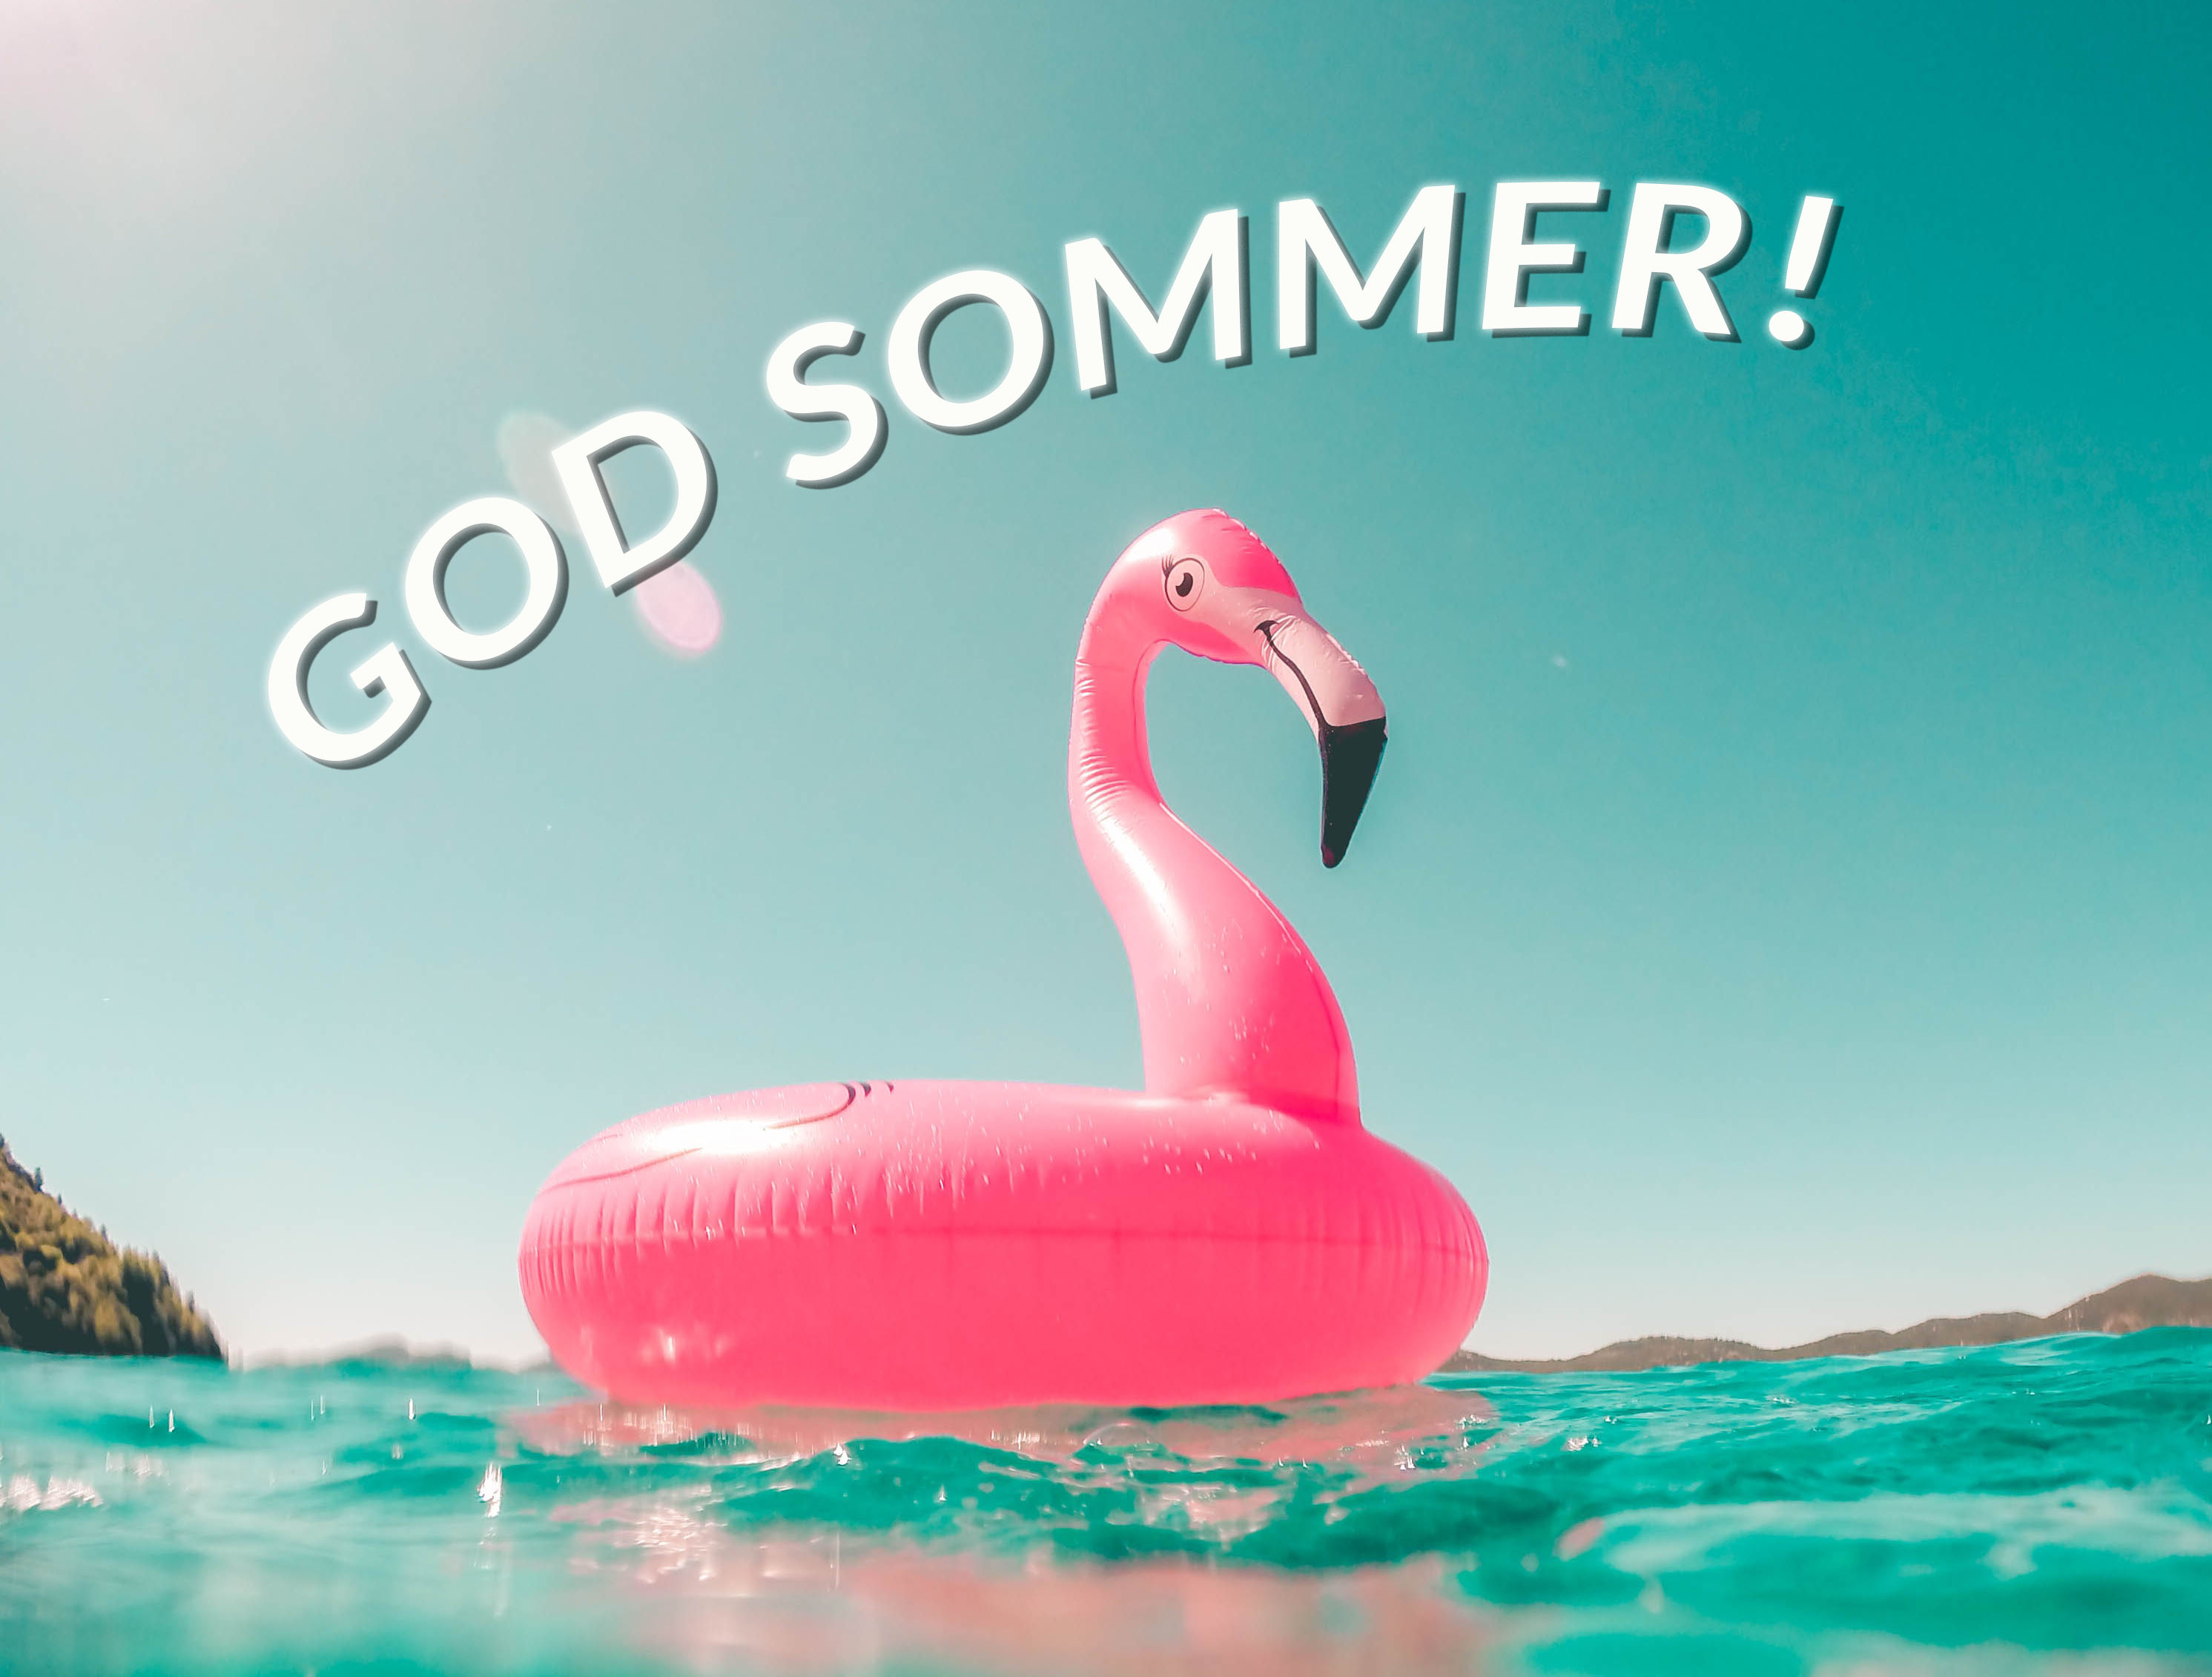 God-sommer-badeflamingo